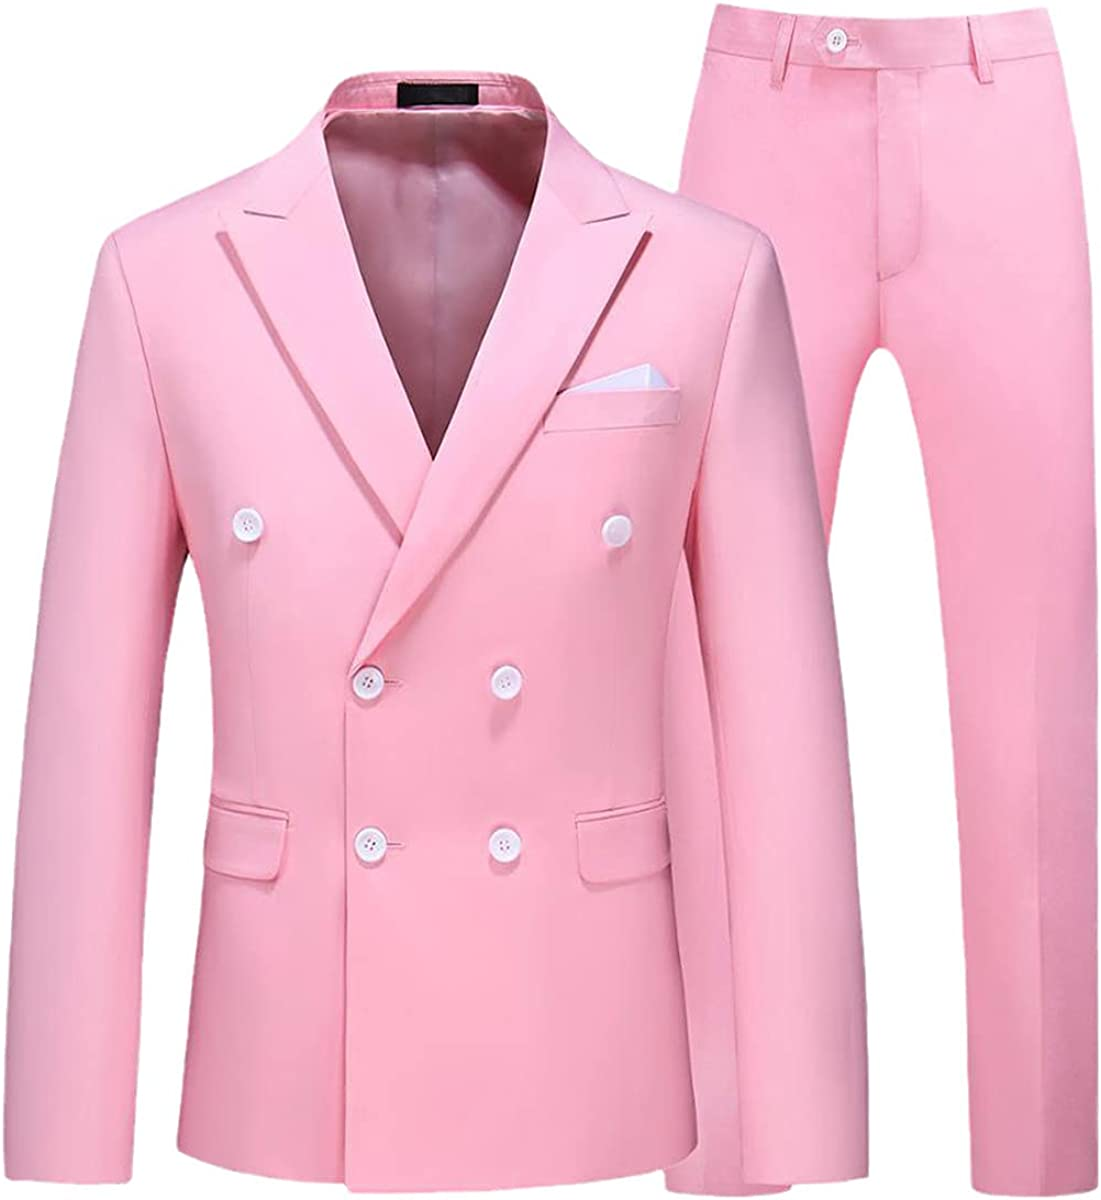 CACLSL Double Breasted Tuxedo Suit Men's Business Work Wedding Formal Suit Solid Color Suit Jacket with Pants